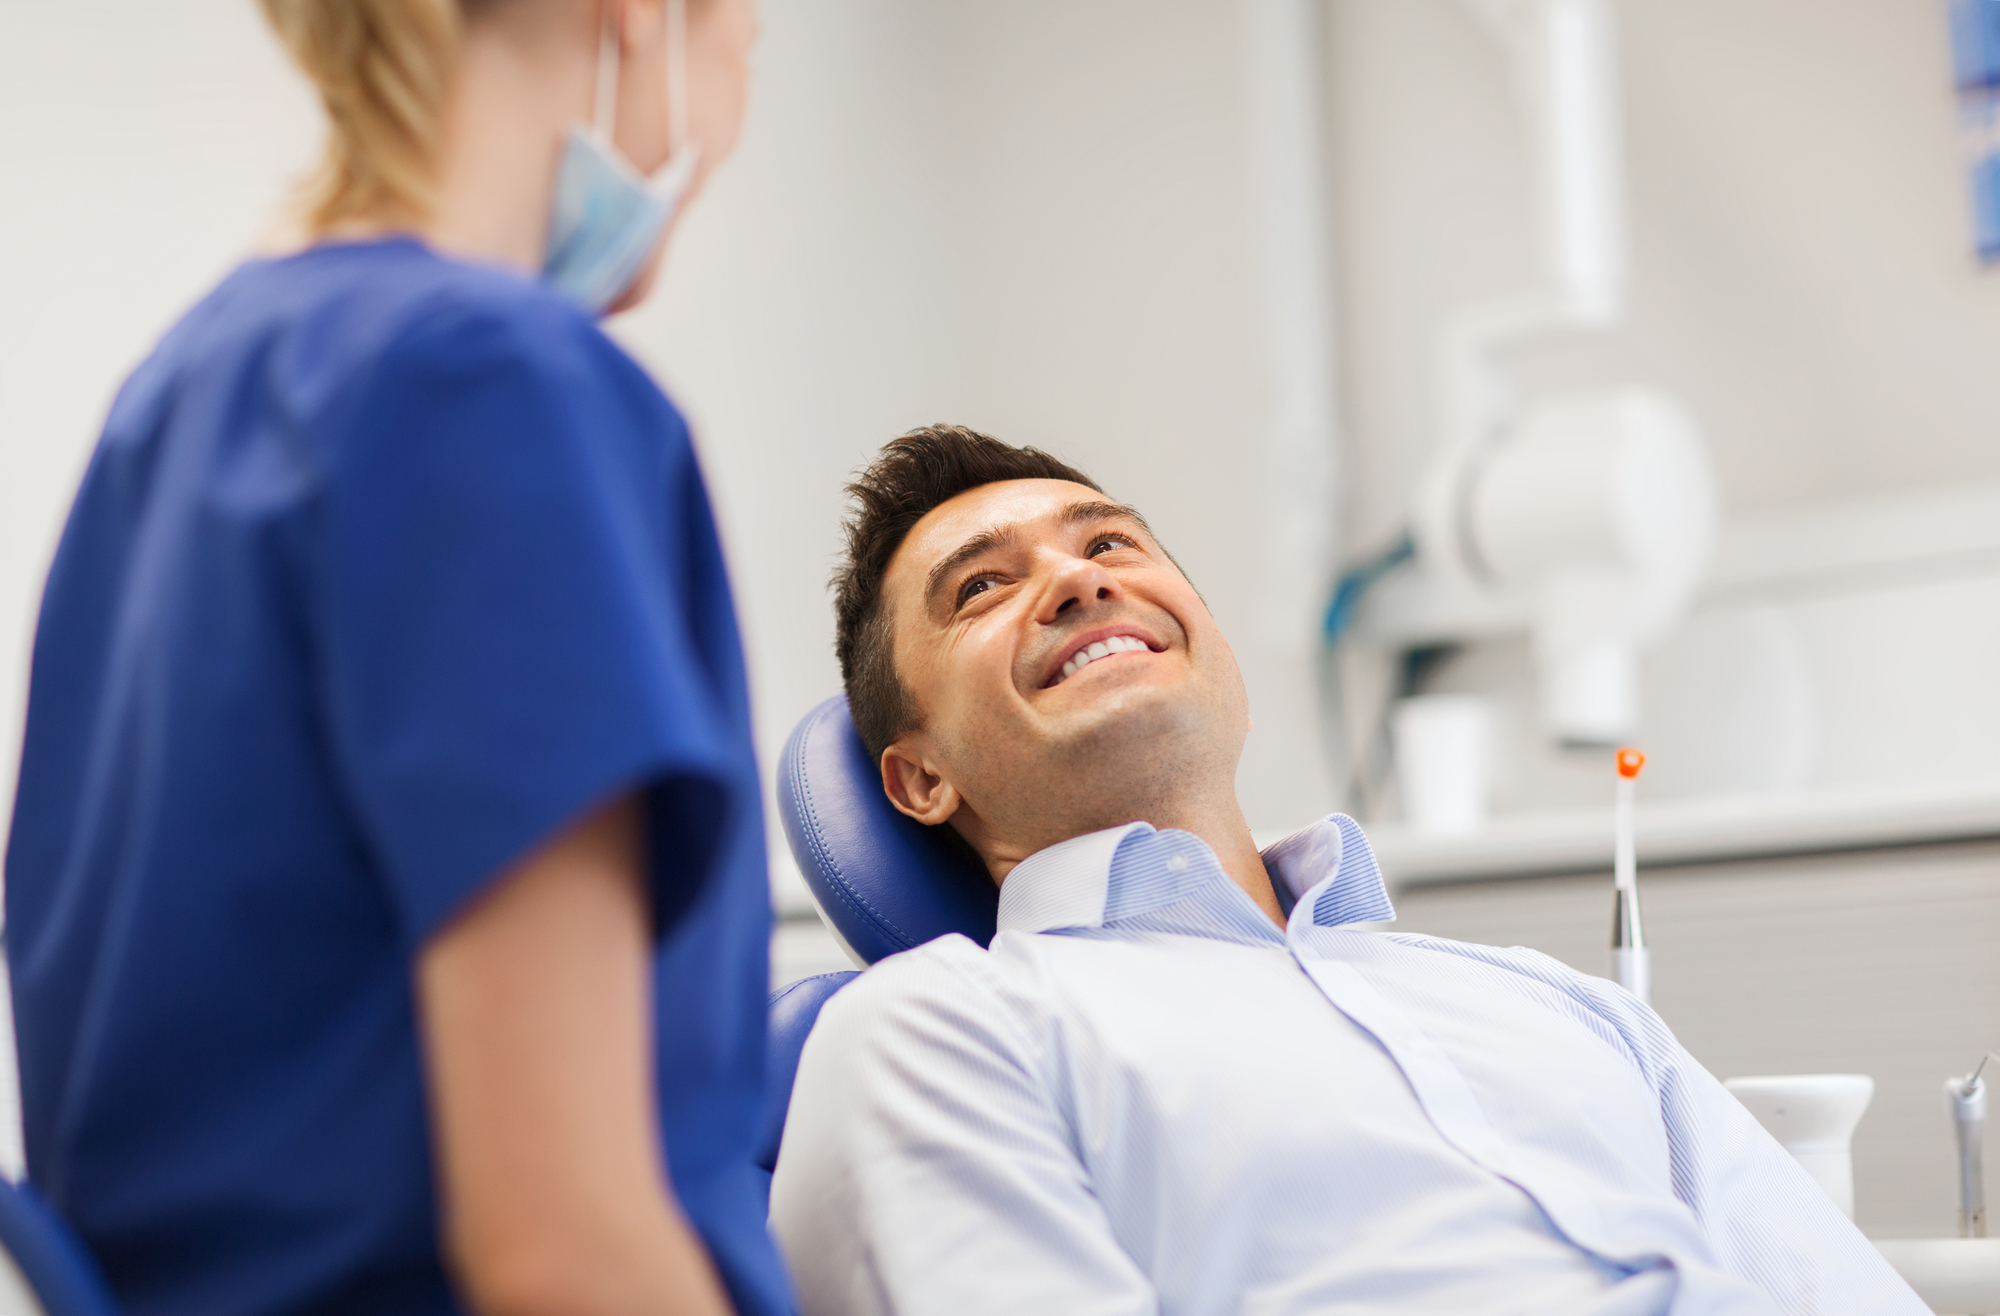 where is the best tmd therapy boynton beach?